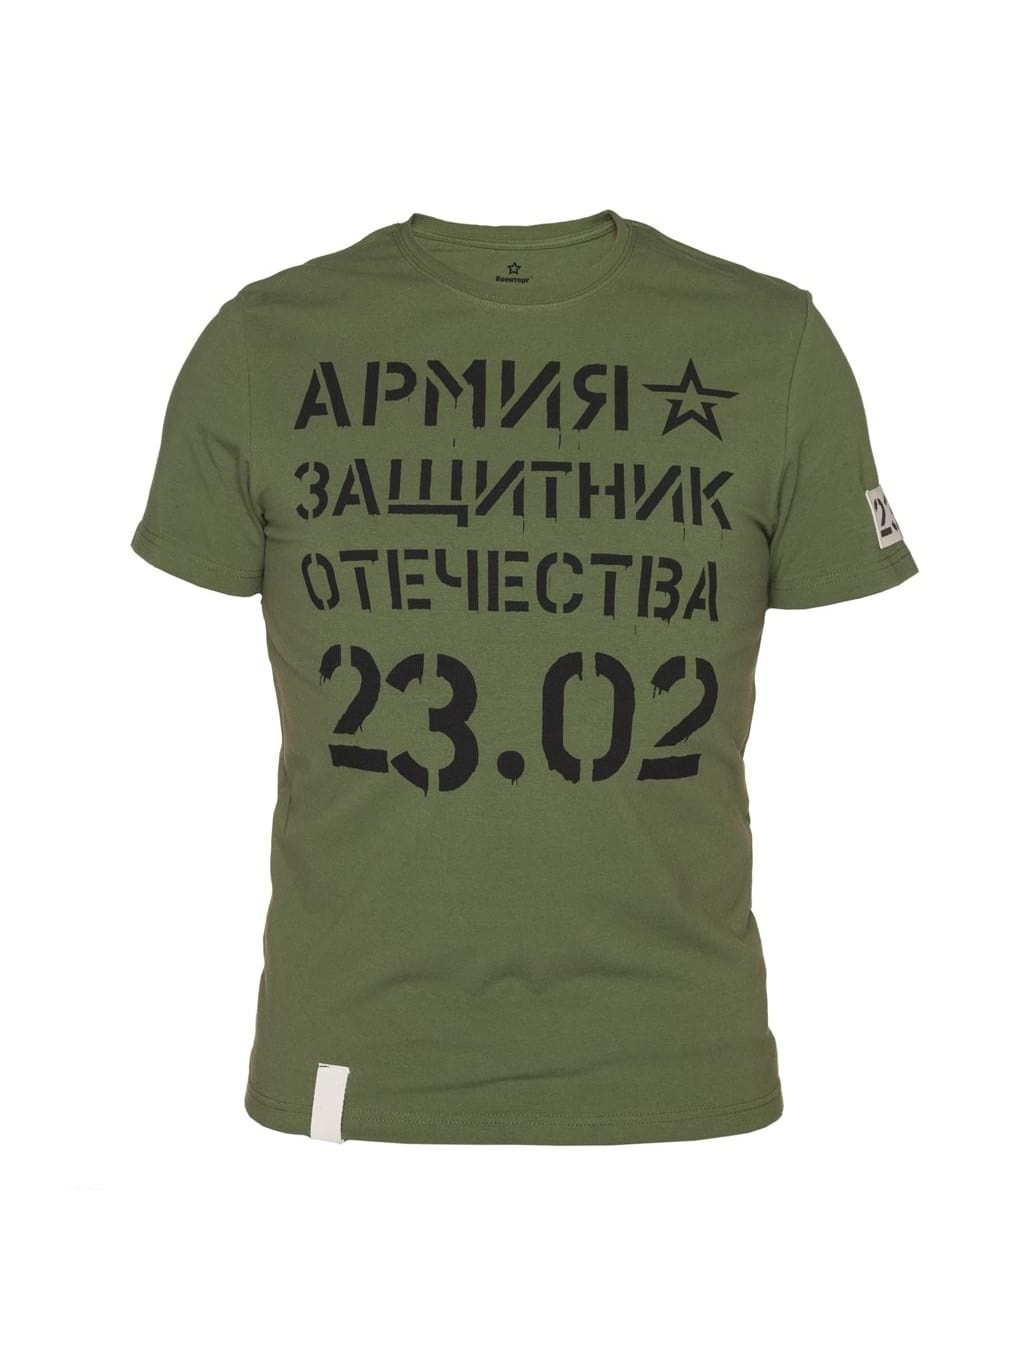 """T-Shirt """"Defender of the Fatherland""""Футболки/Поло<br>Serial collection T-shirt.<br>Intended for real men.<br>Perfect Defender of the fatherland day gift for man.<br><br>Цвет: Хаки<br>Размер: 3XL<br>Пол: Мужчинам"""